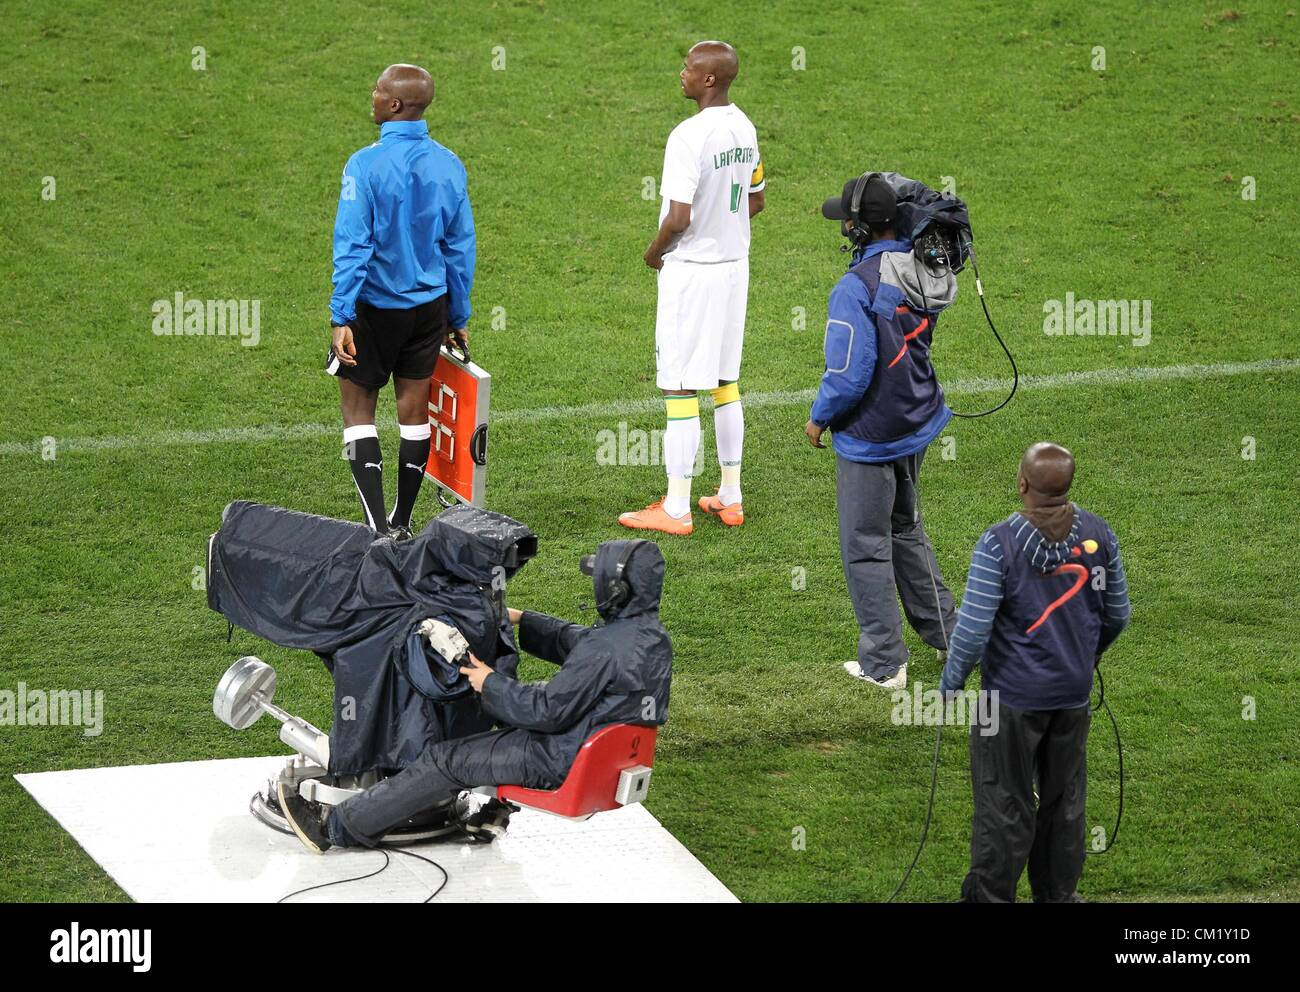 DURBAN, SOUTH AFRICA - SEPTEMBER 15,Superspoprt staff at work during the Absa Premiership match between Golden Arrows - Stock Image